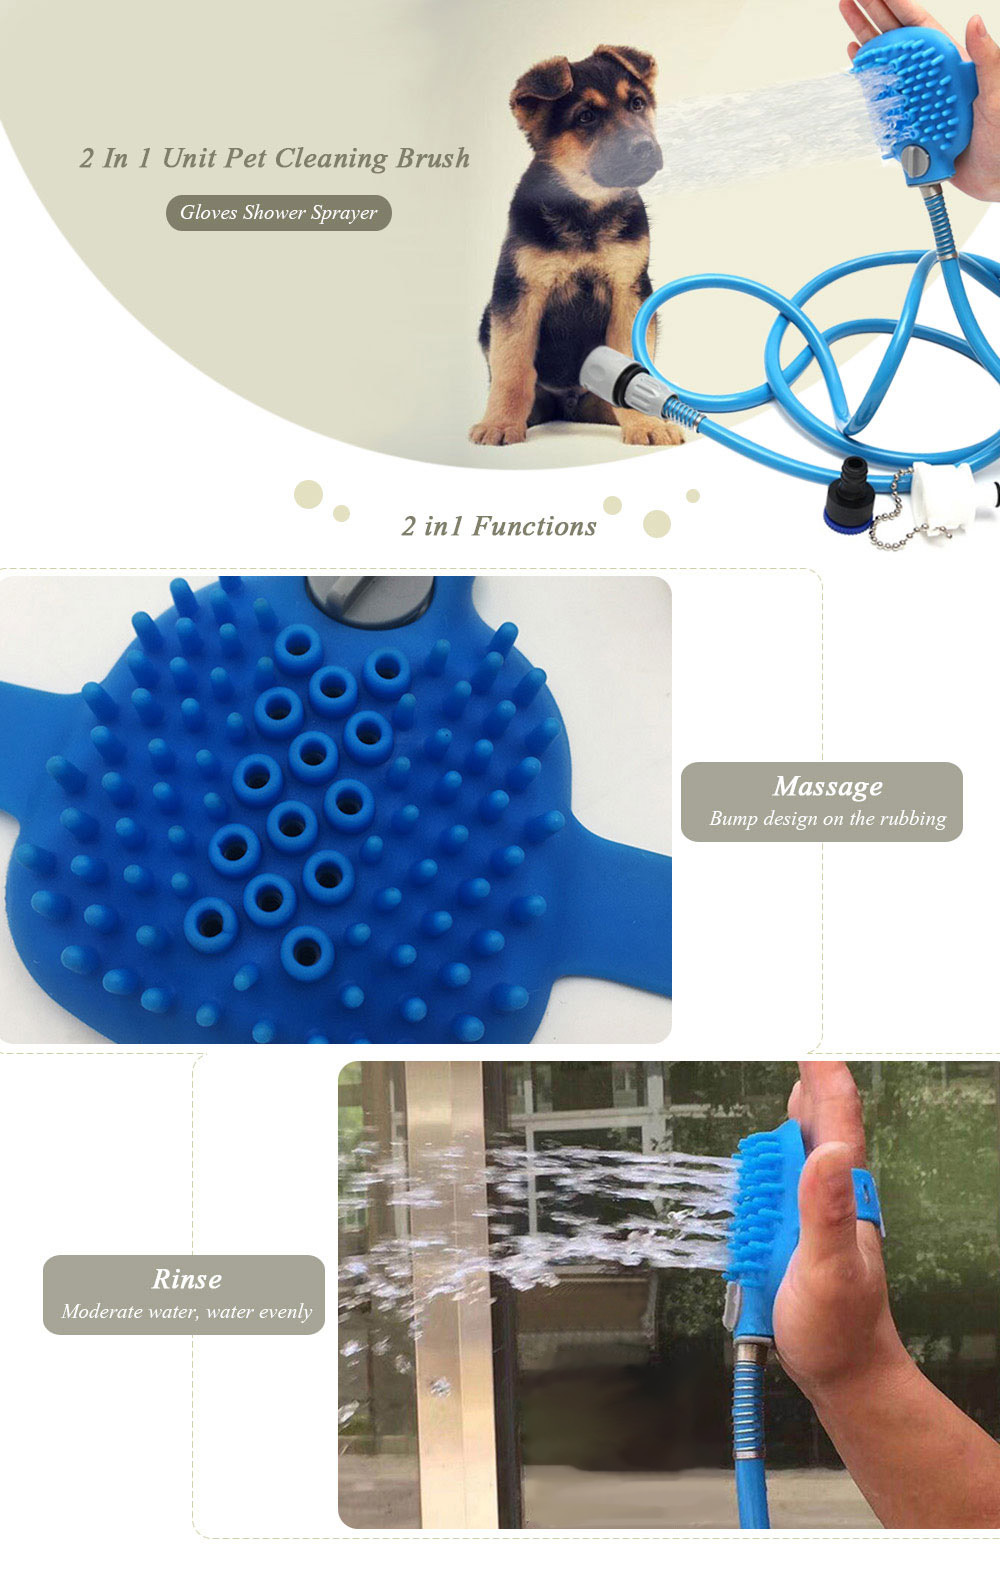 Creative 2 in 1 Unit Pet Cleaning Brush Gloves Shower Sprayer